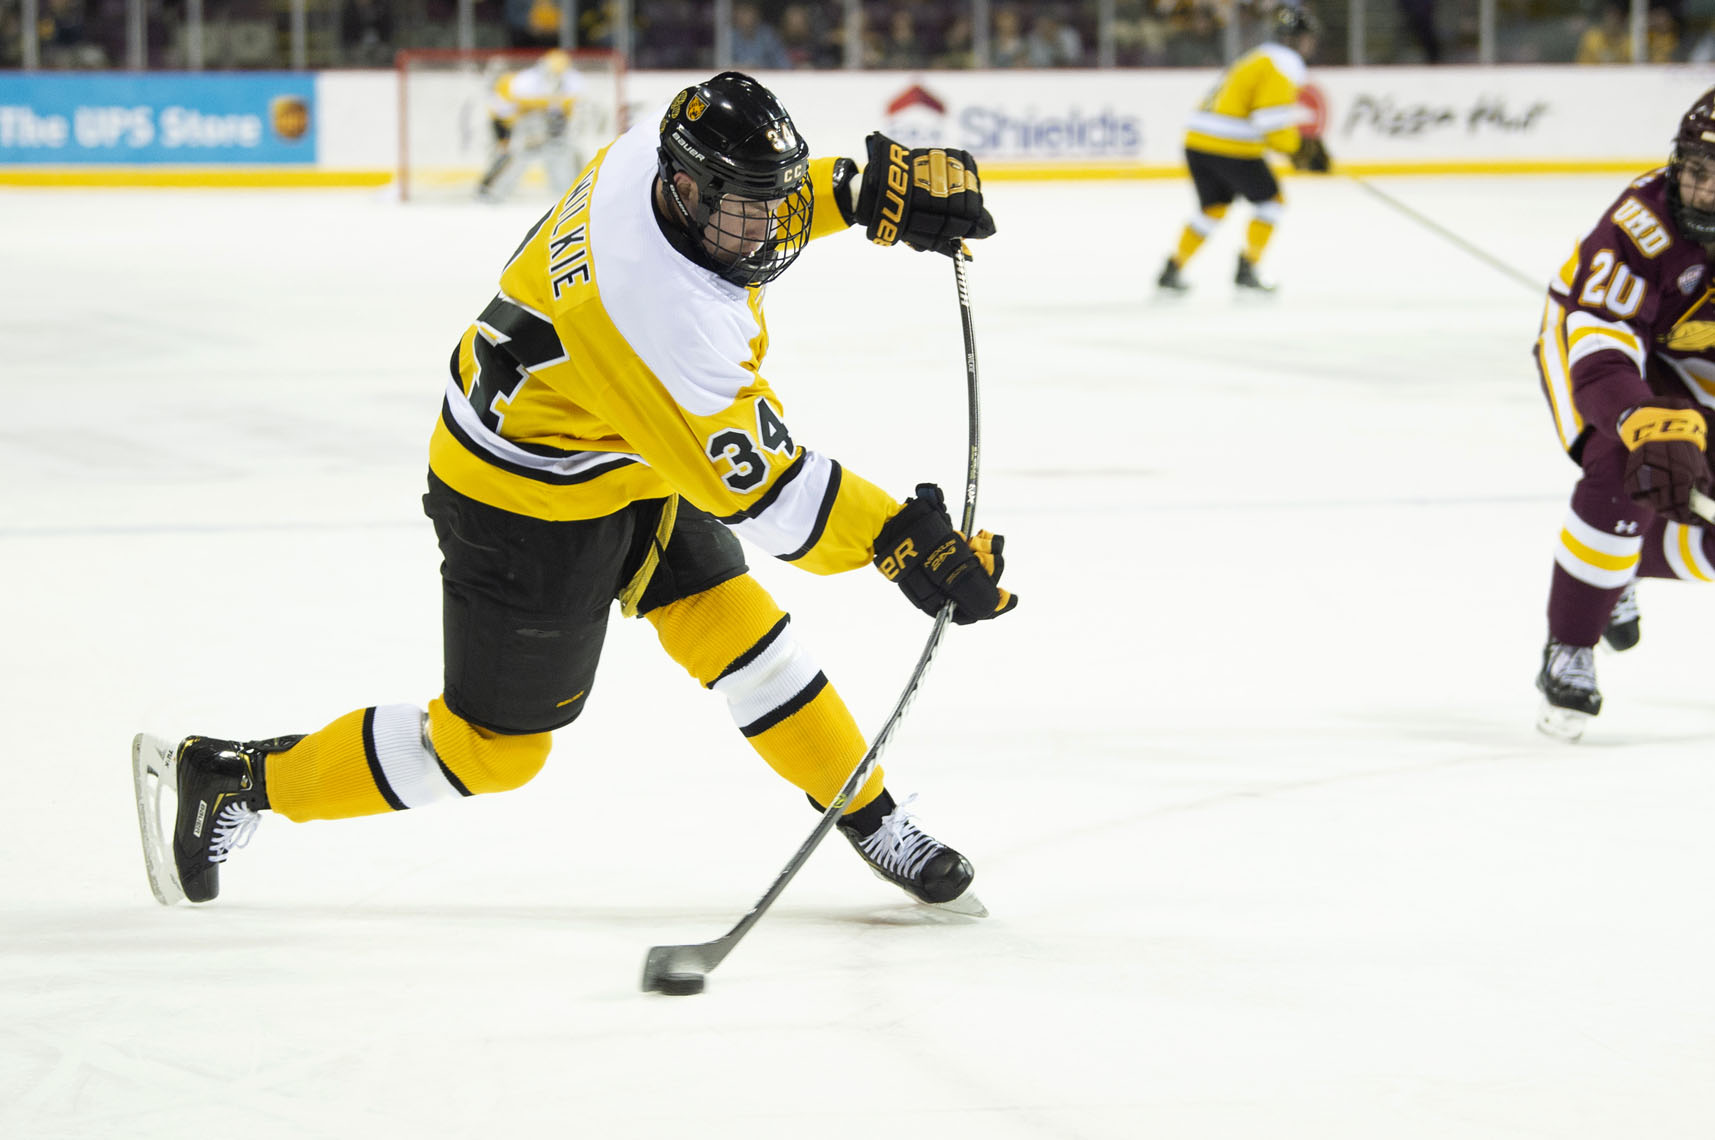 Chris Wilkie, Colorado College Hockey, Slap shot